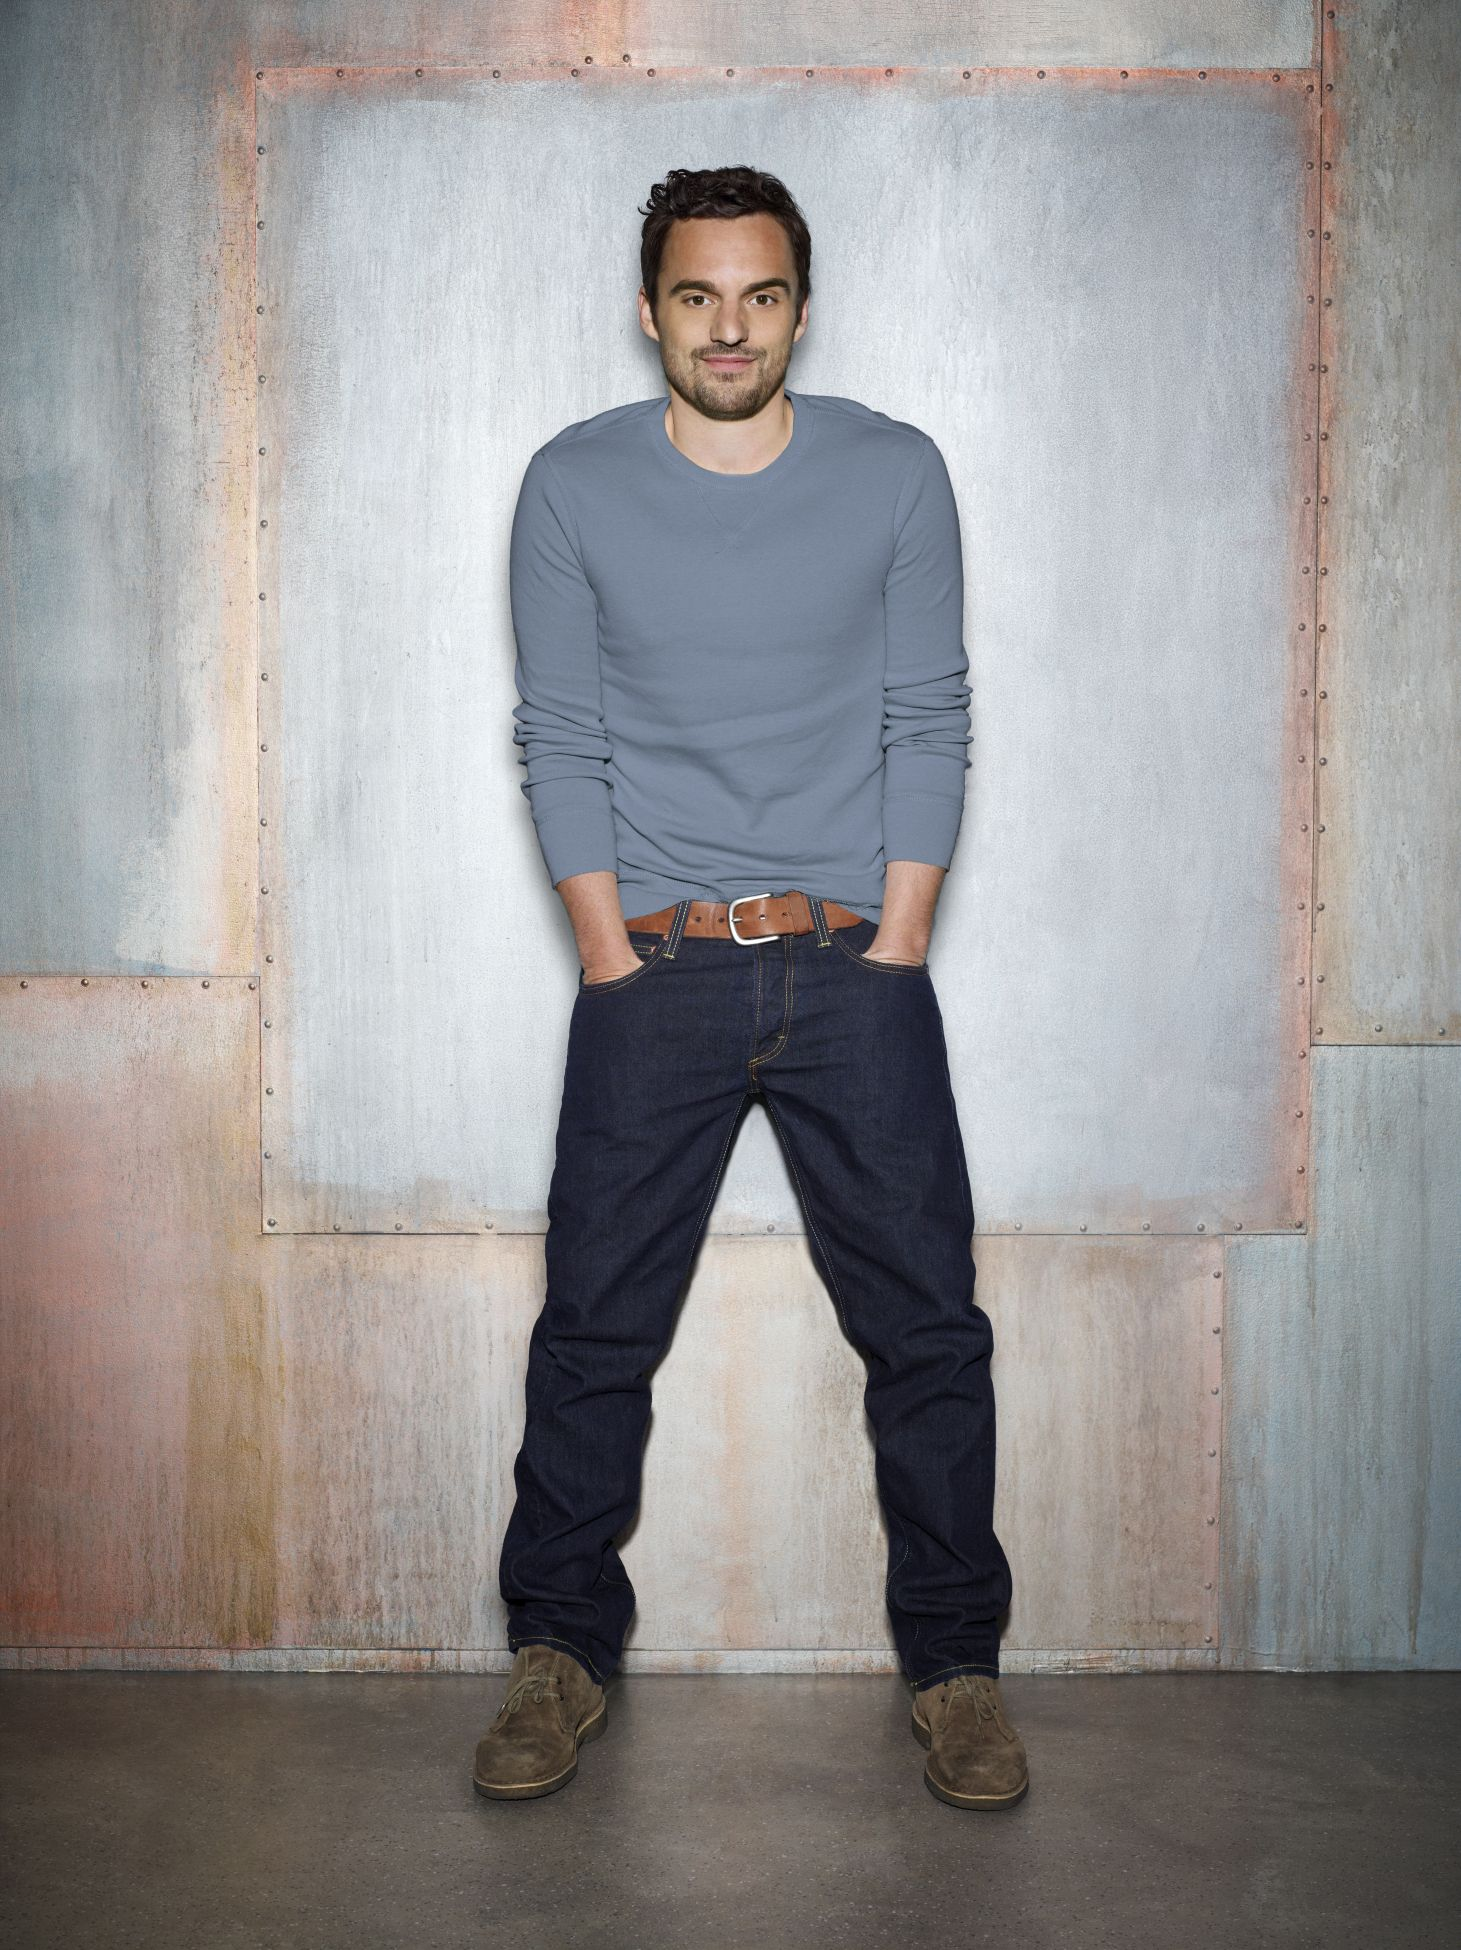 20 Life Lessons We Can Learn From Nick Miller